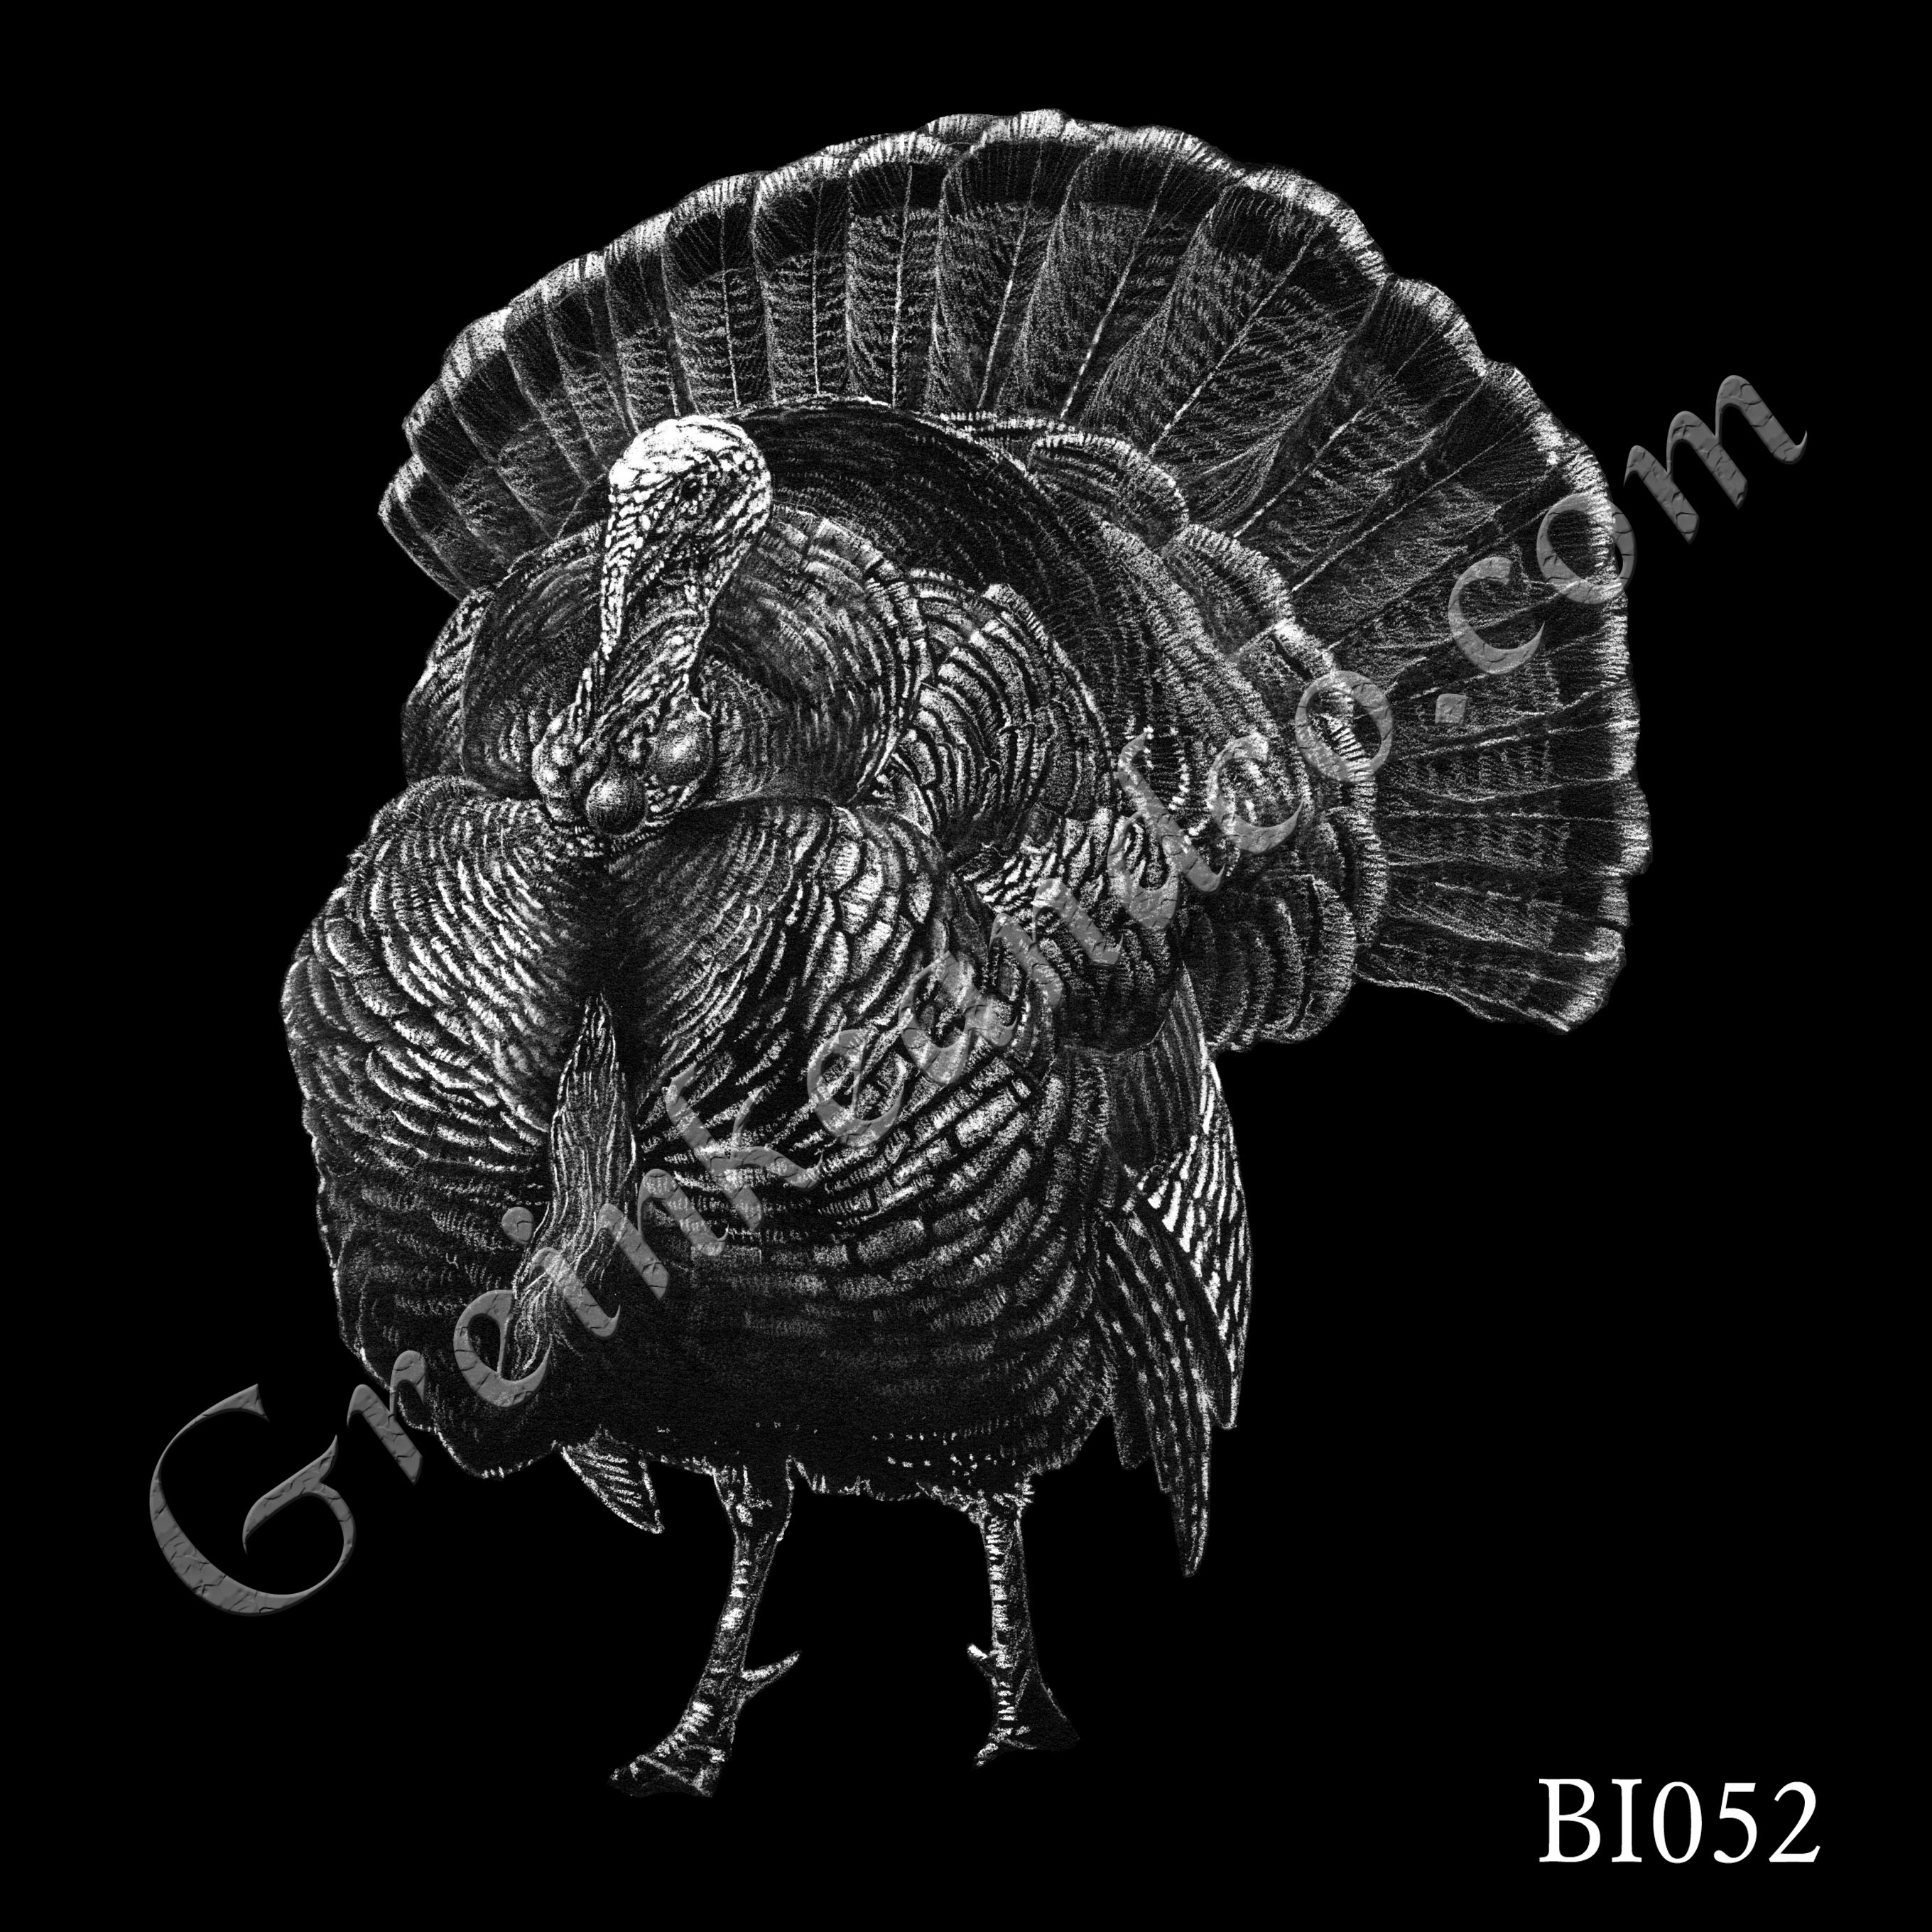 BI052 - Tom Turkey